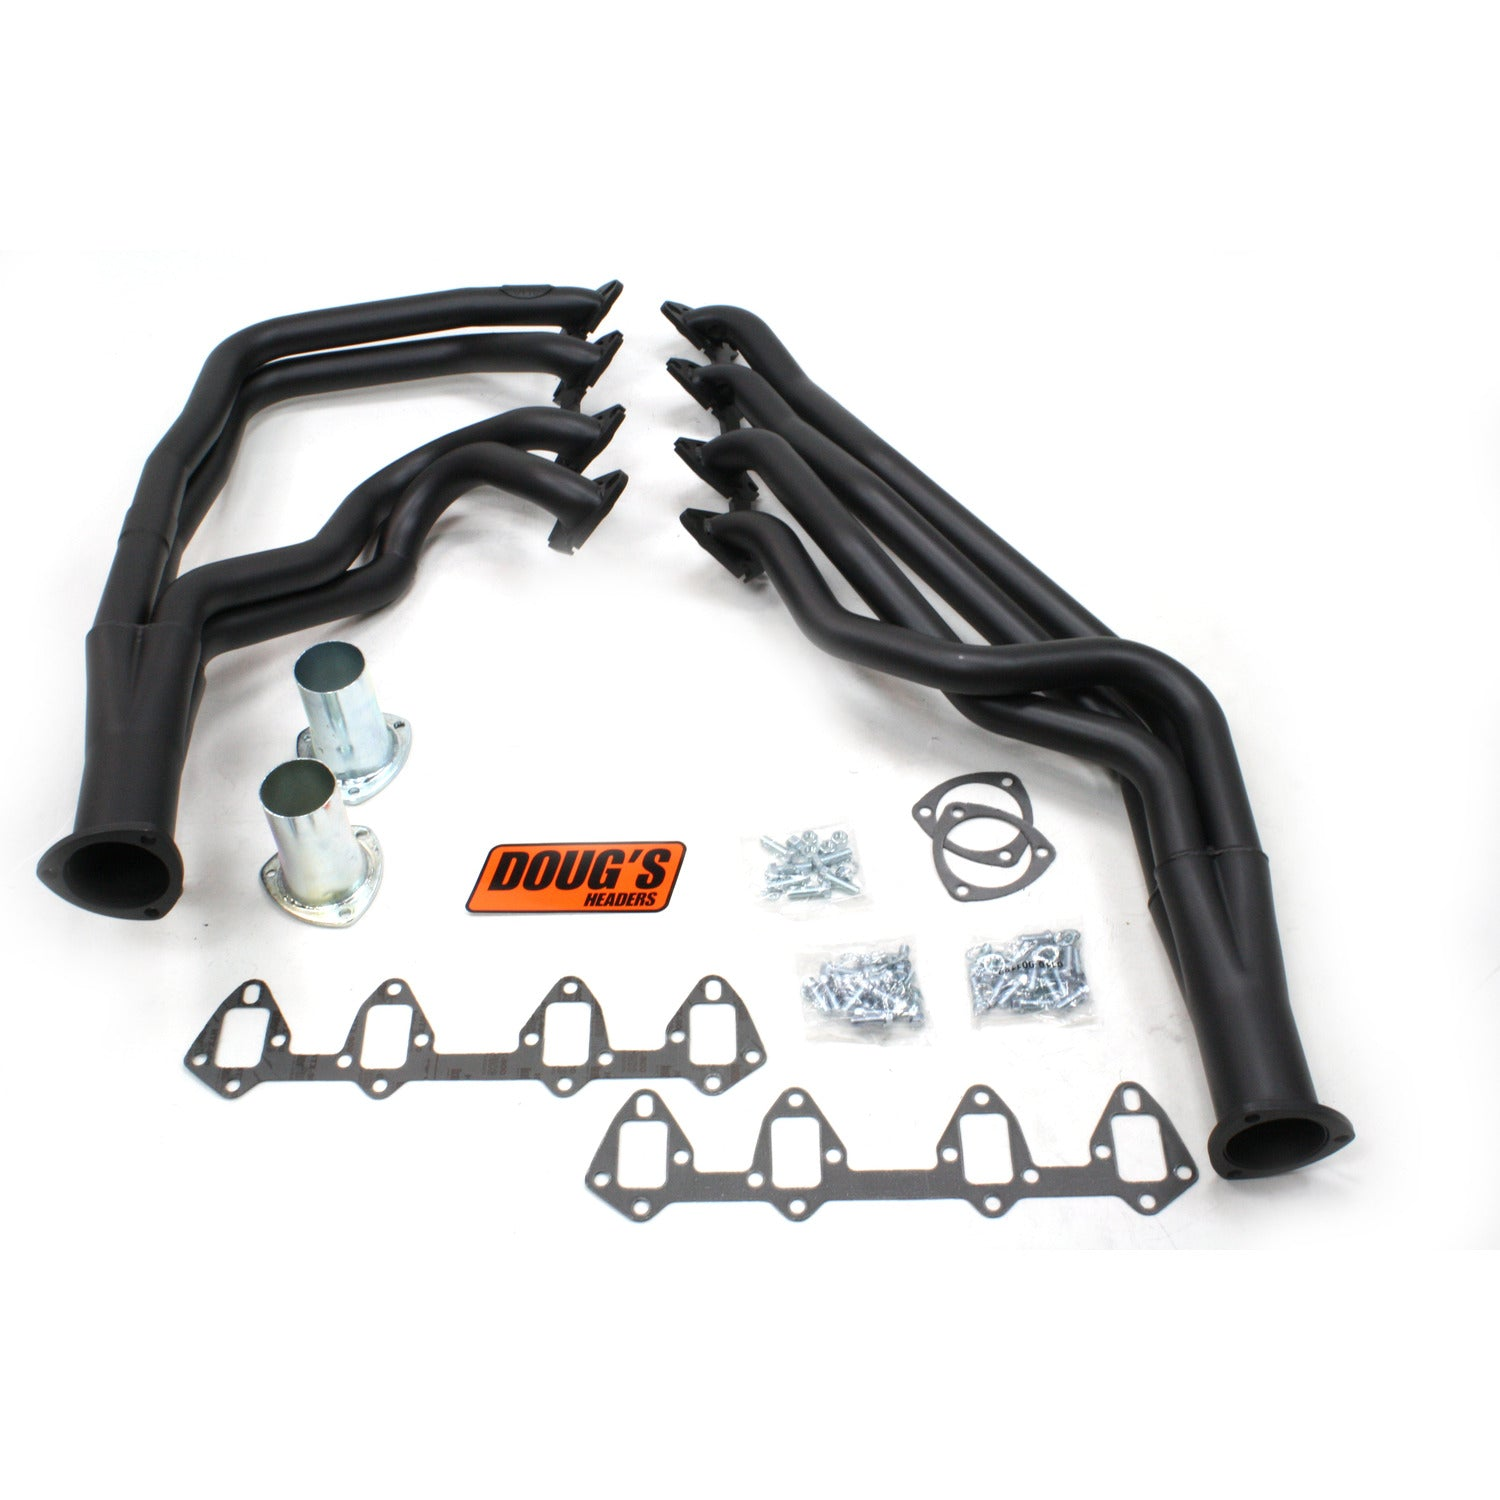 "Doug's Headers D625-B 1 3/4"" 4-Tube Full Length Header Ford Fairlane FE 64-73 Hi-Temp Black Coating"